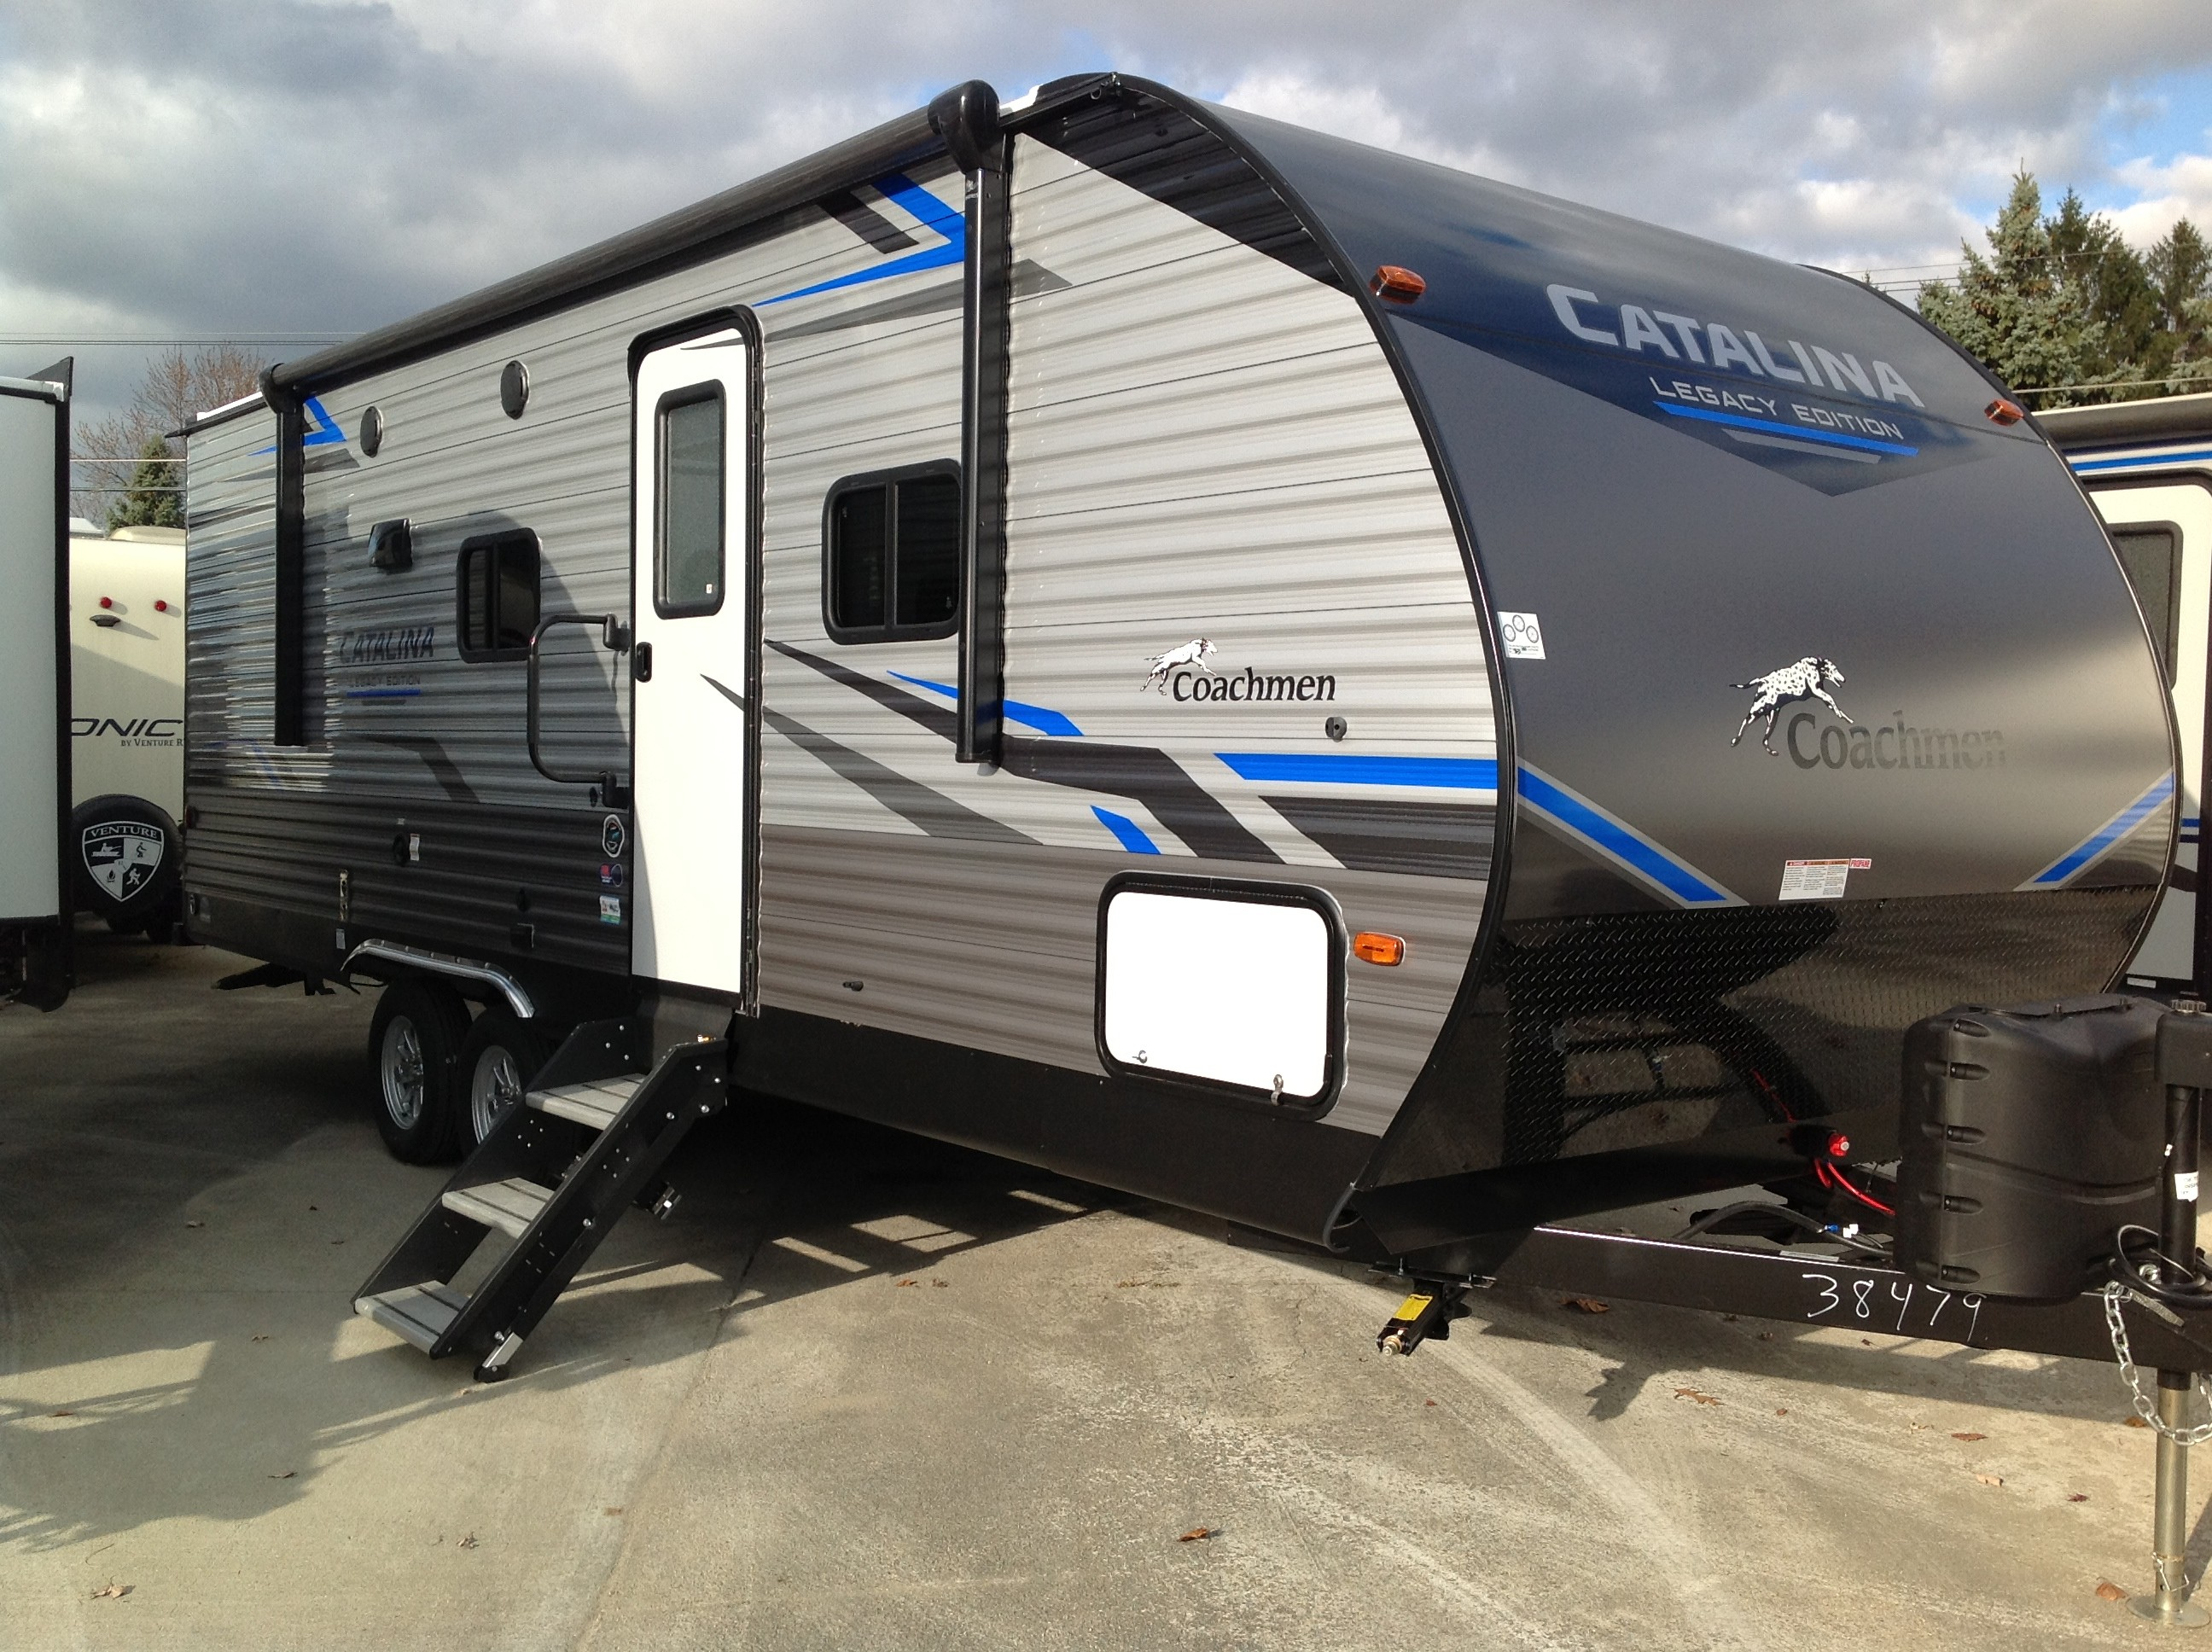 New, 2021, Coachmen, Catalina 243 RBSLE, Travel Trailers